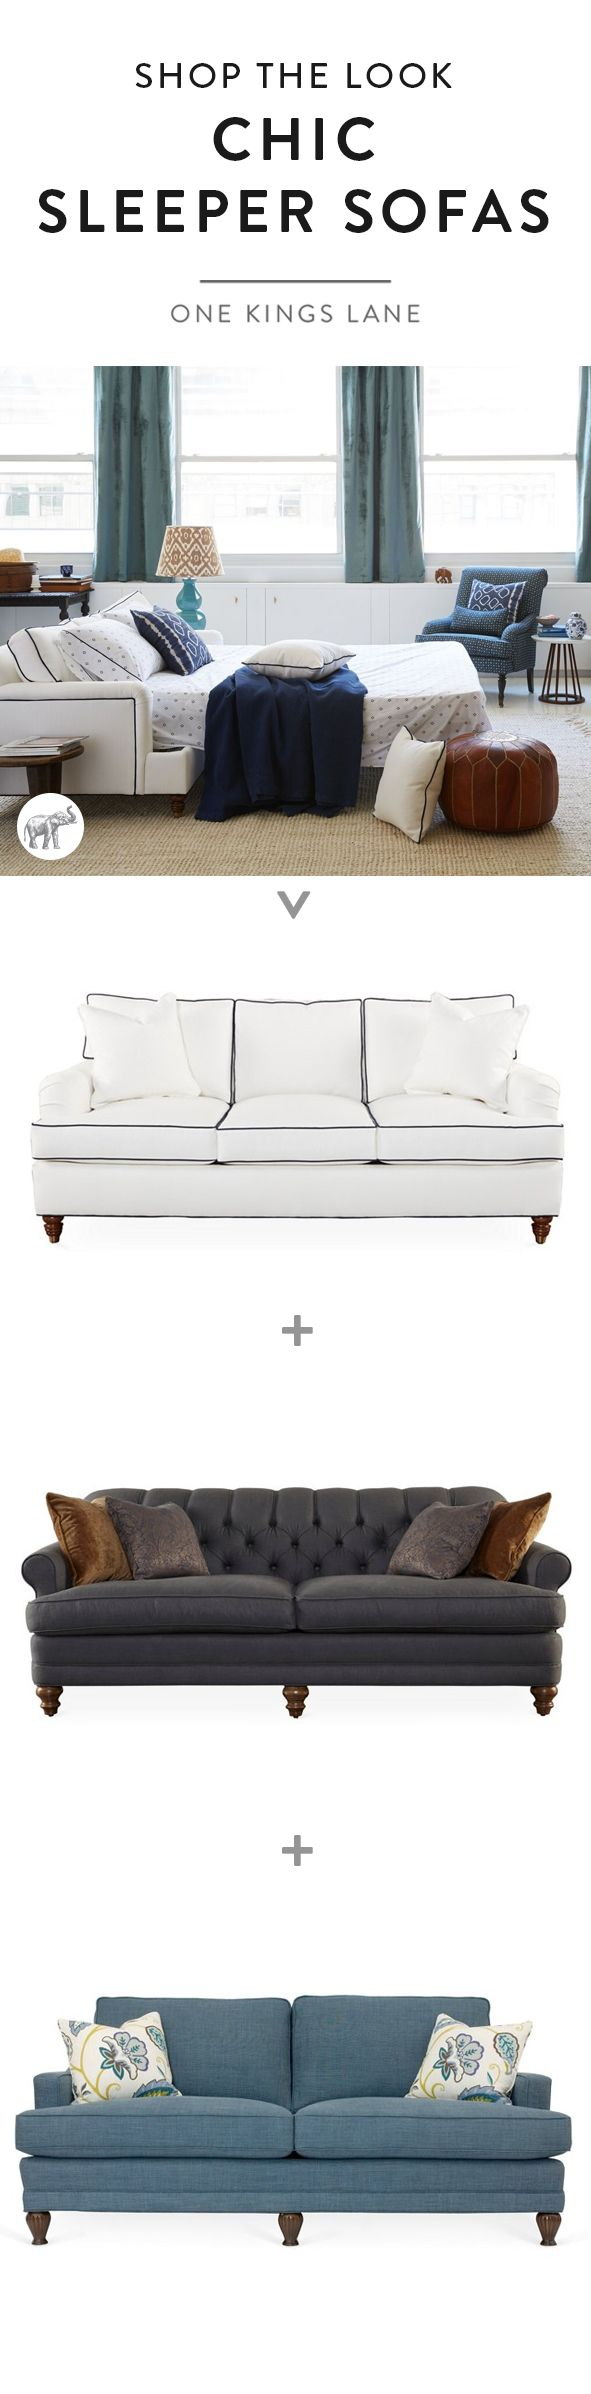 Meet The Ultimate Multitasker: The Sleeper Sofa! These Pieces May Just Be  The Ultimate In Multi Functional Home Decor And Will Turn Any Room Into An  Instant ...